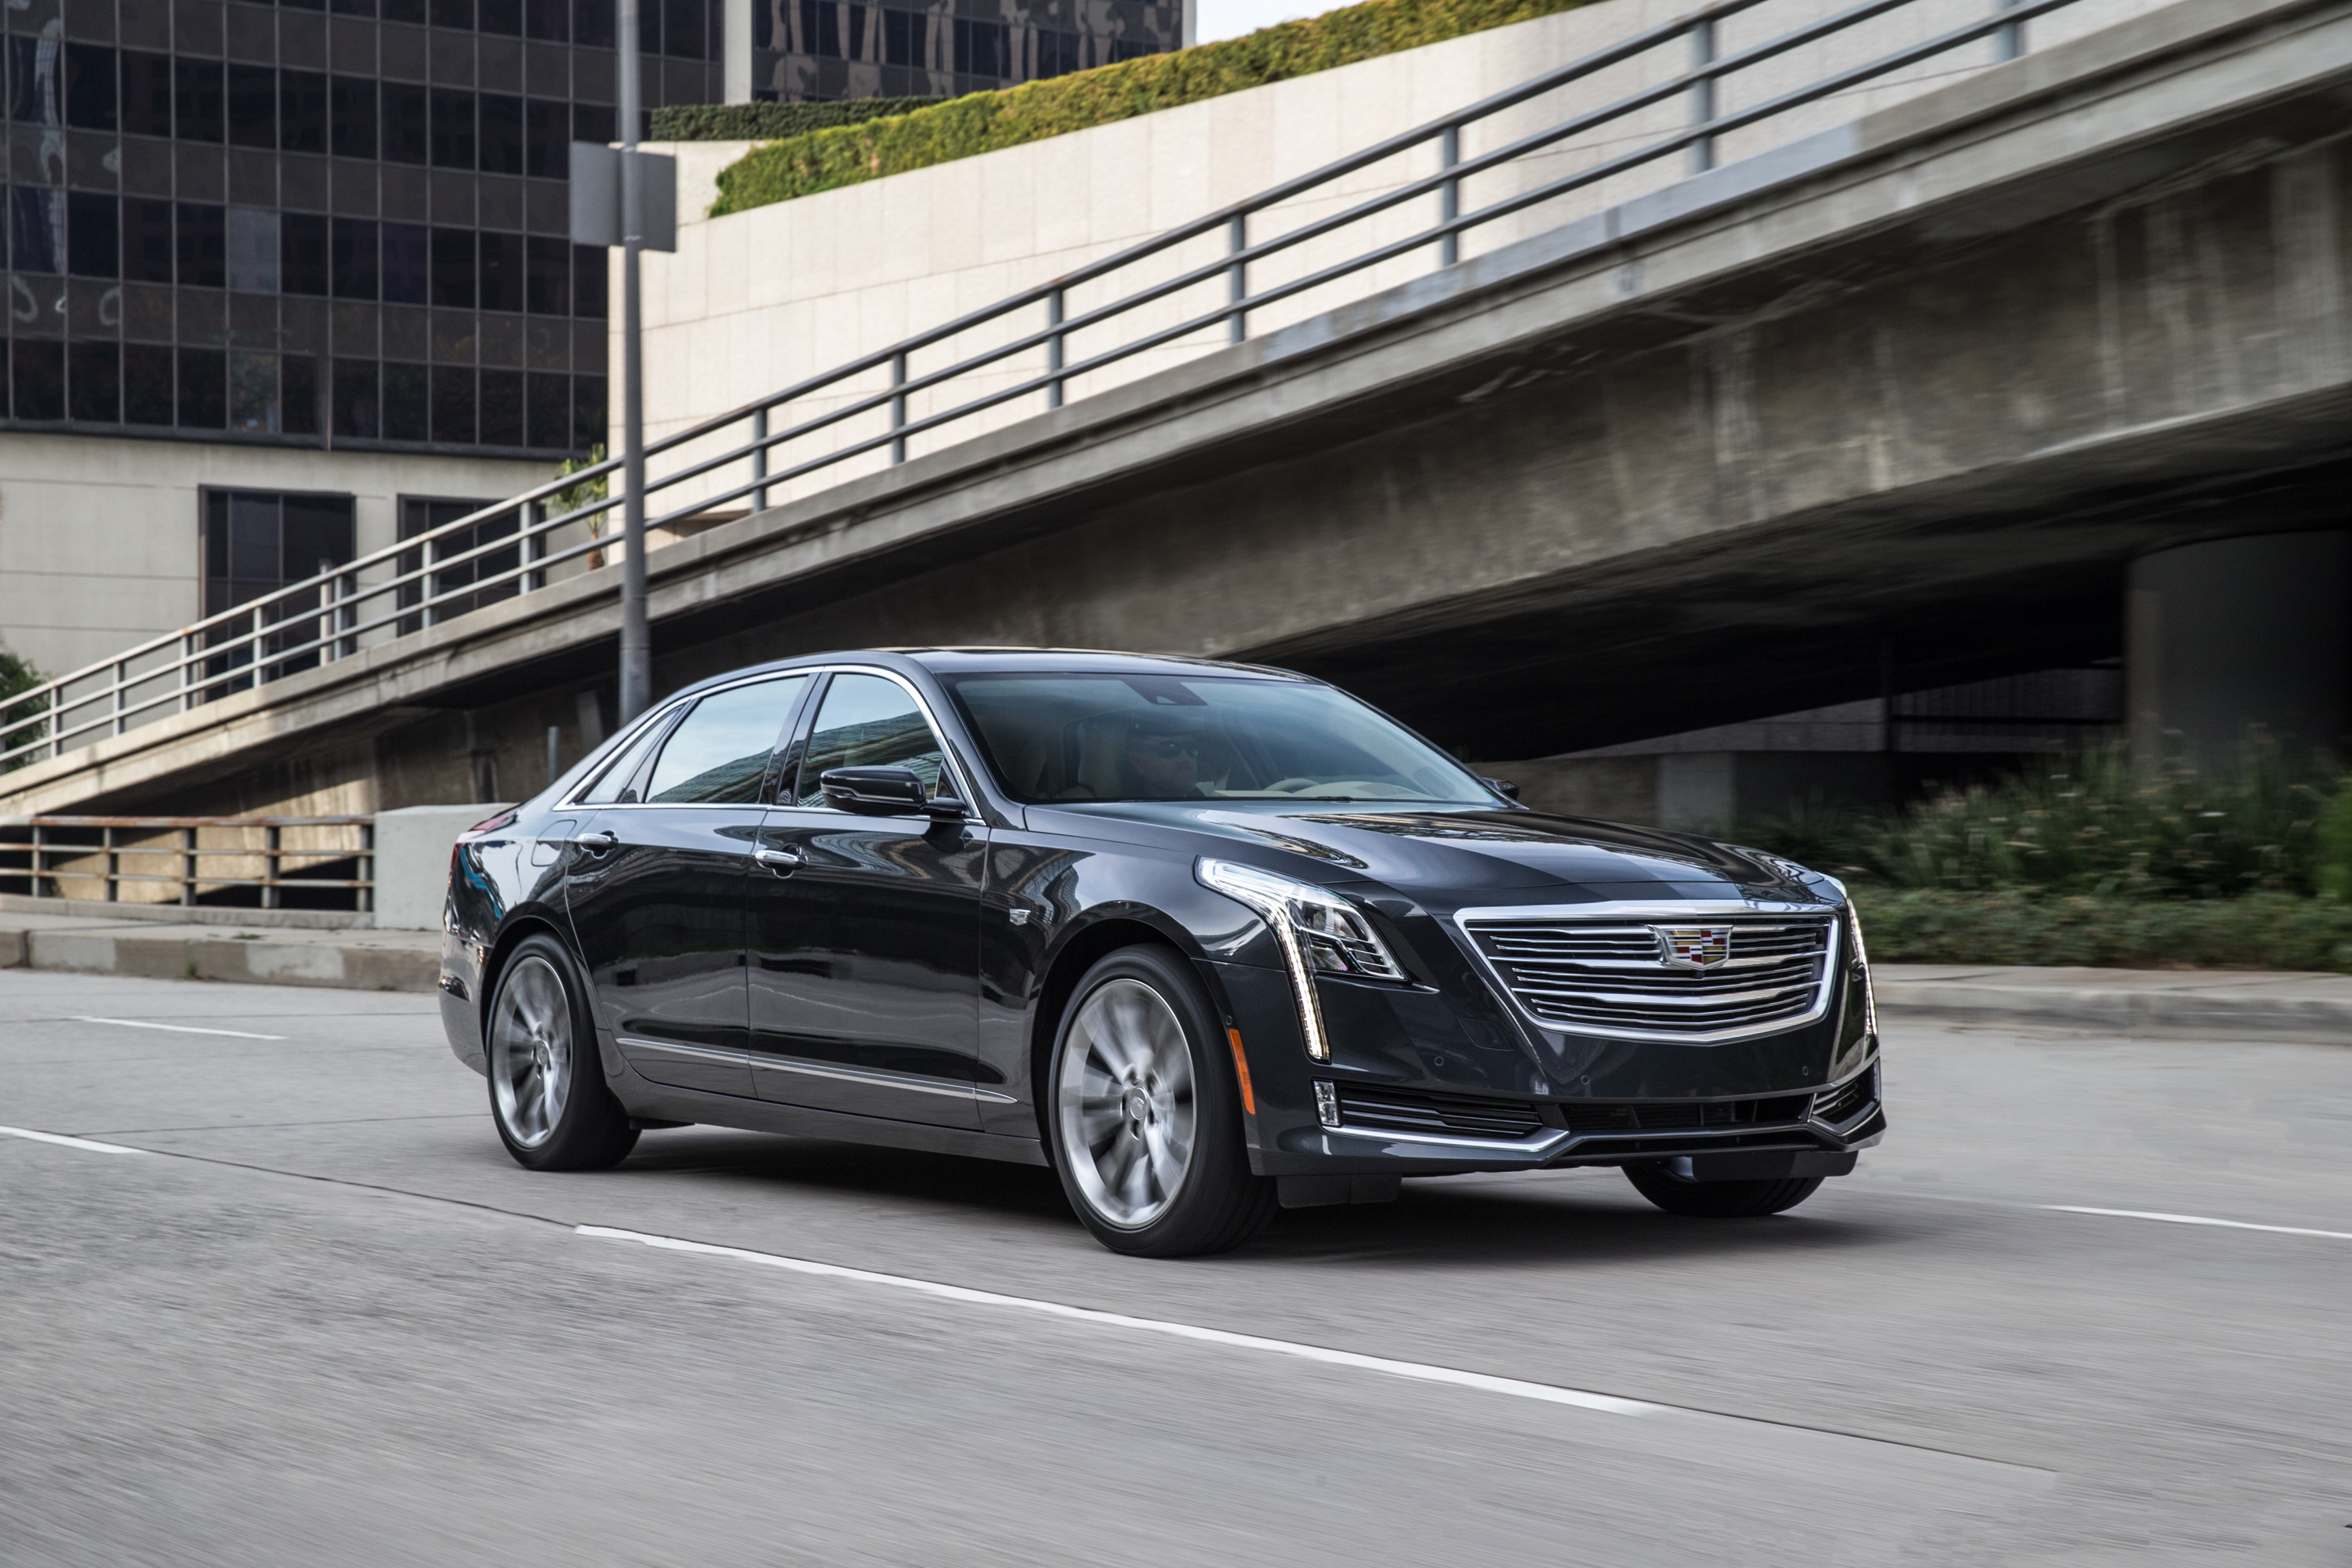 2016 cadillac ct6 review ratings specs prices and photos the car connection. Black Bedroom Furniture Sets. Home Design Ideas